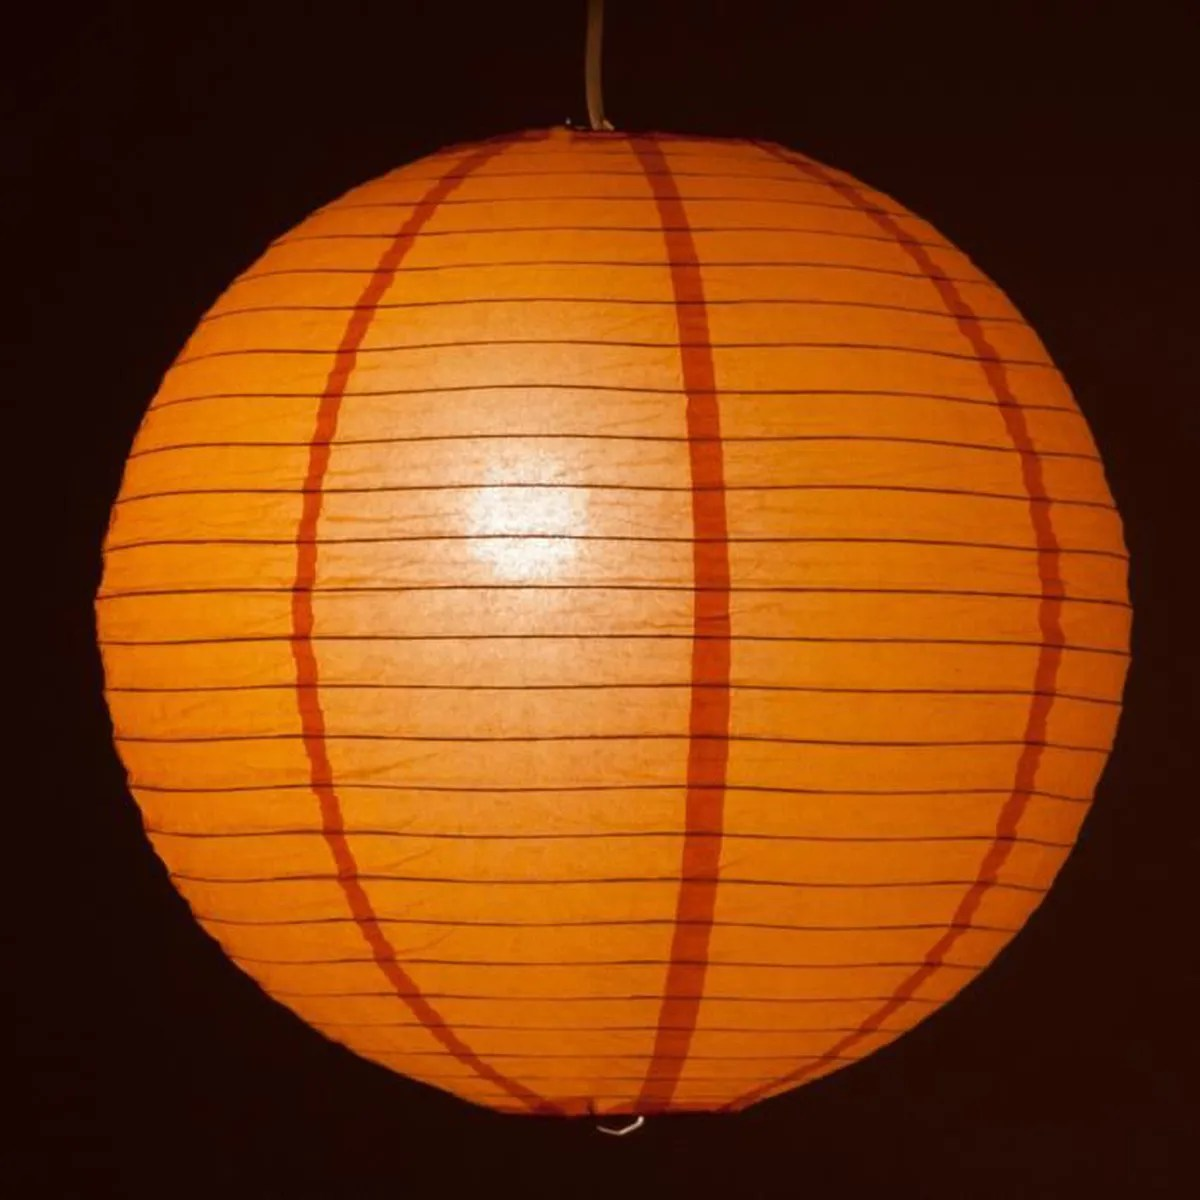 Suspension Papier Boule Suspension Boule Papier Orange Ø 40cm Câble 80cm Achat Vente